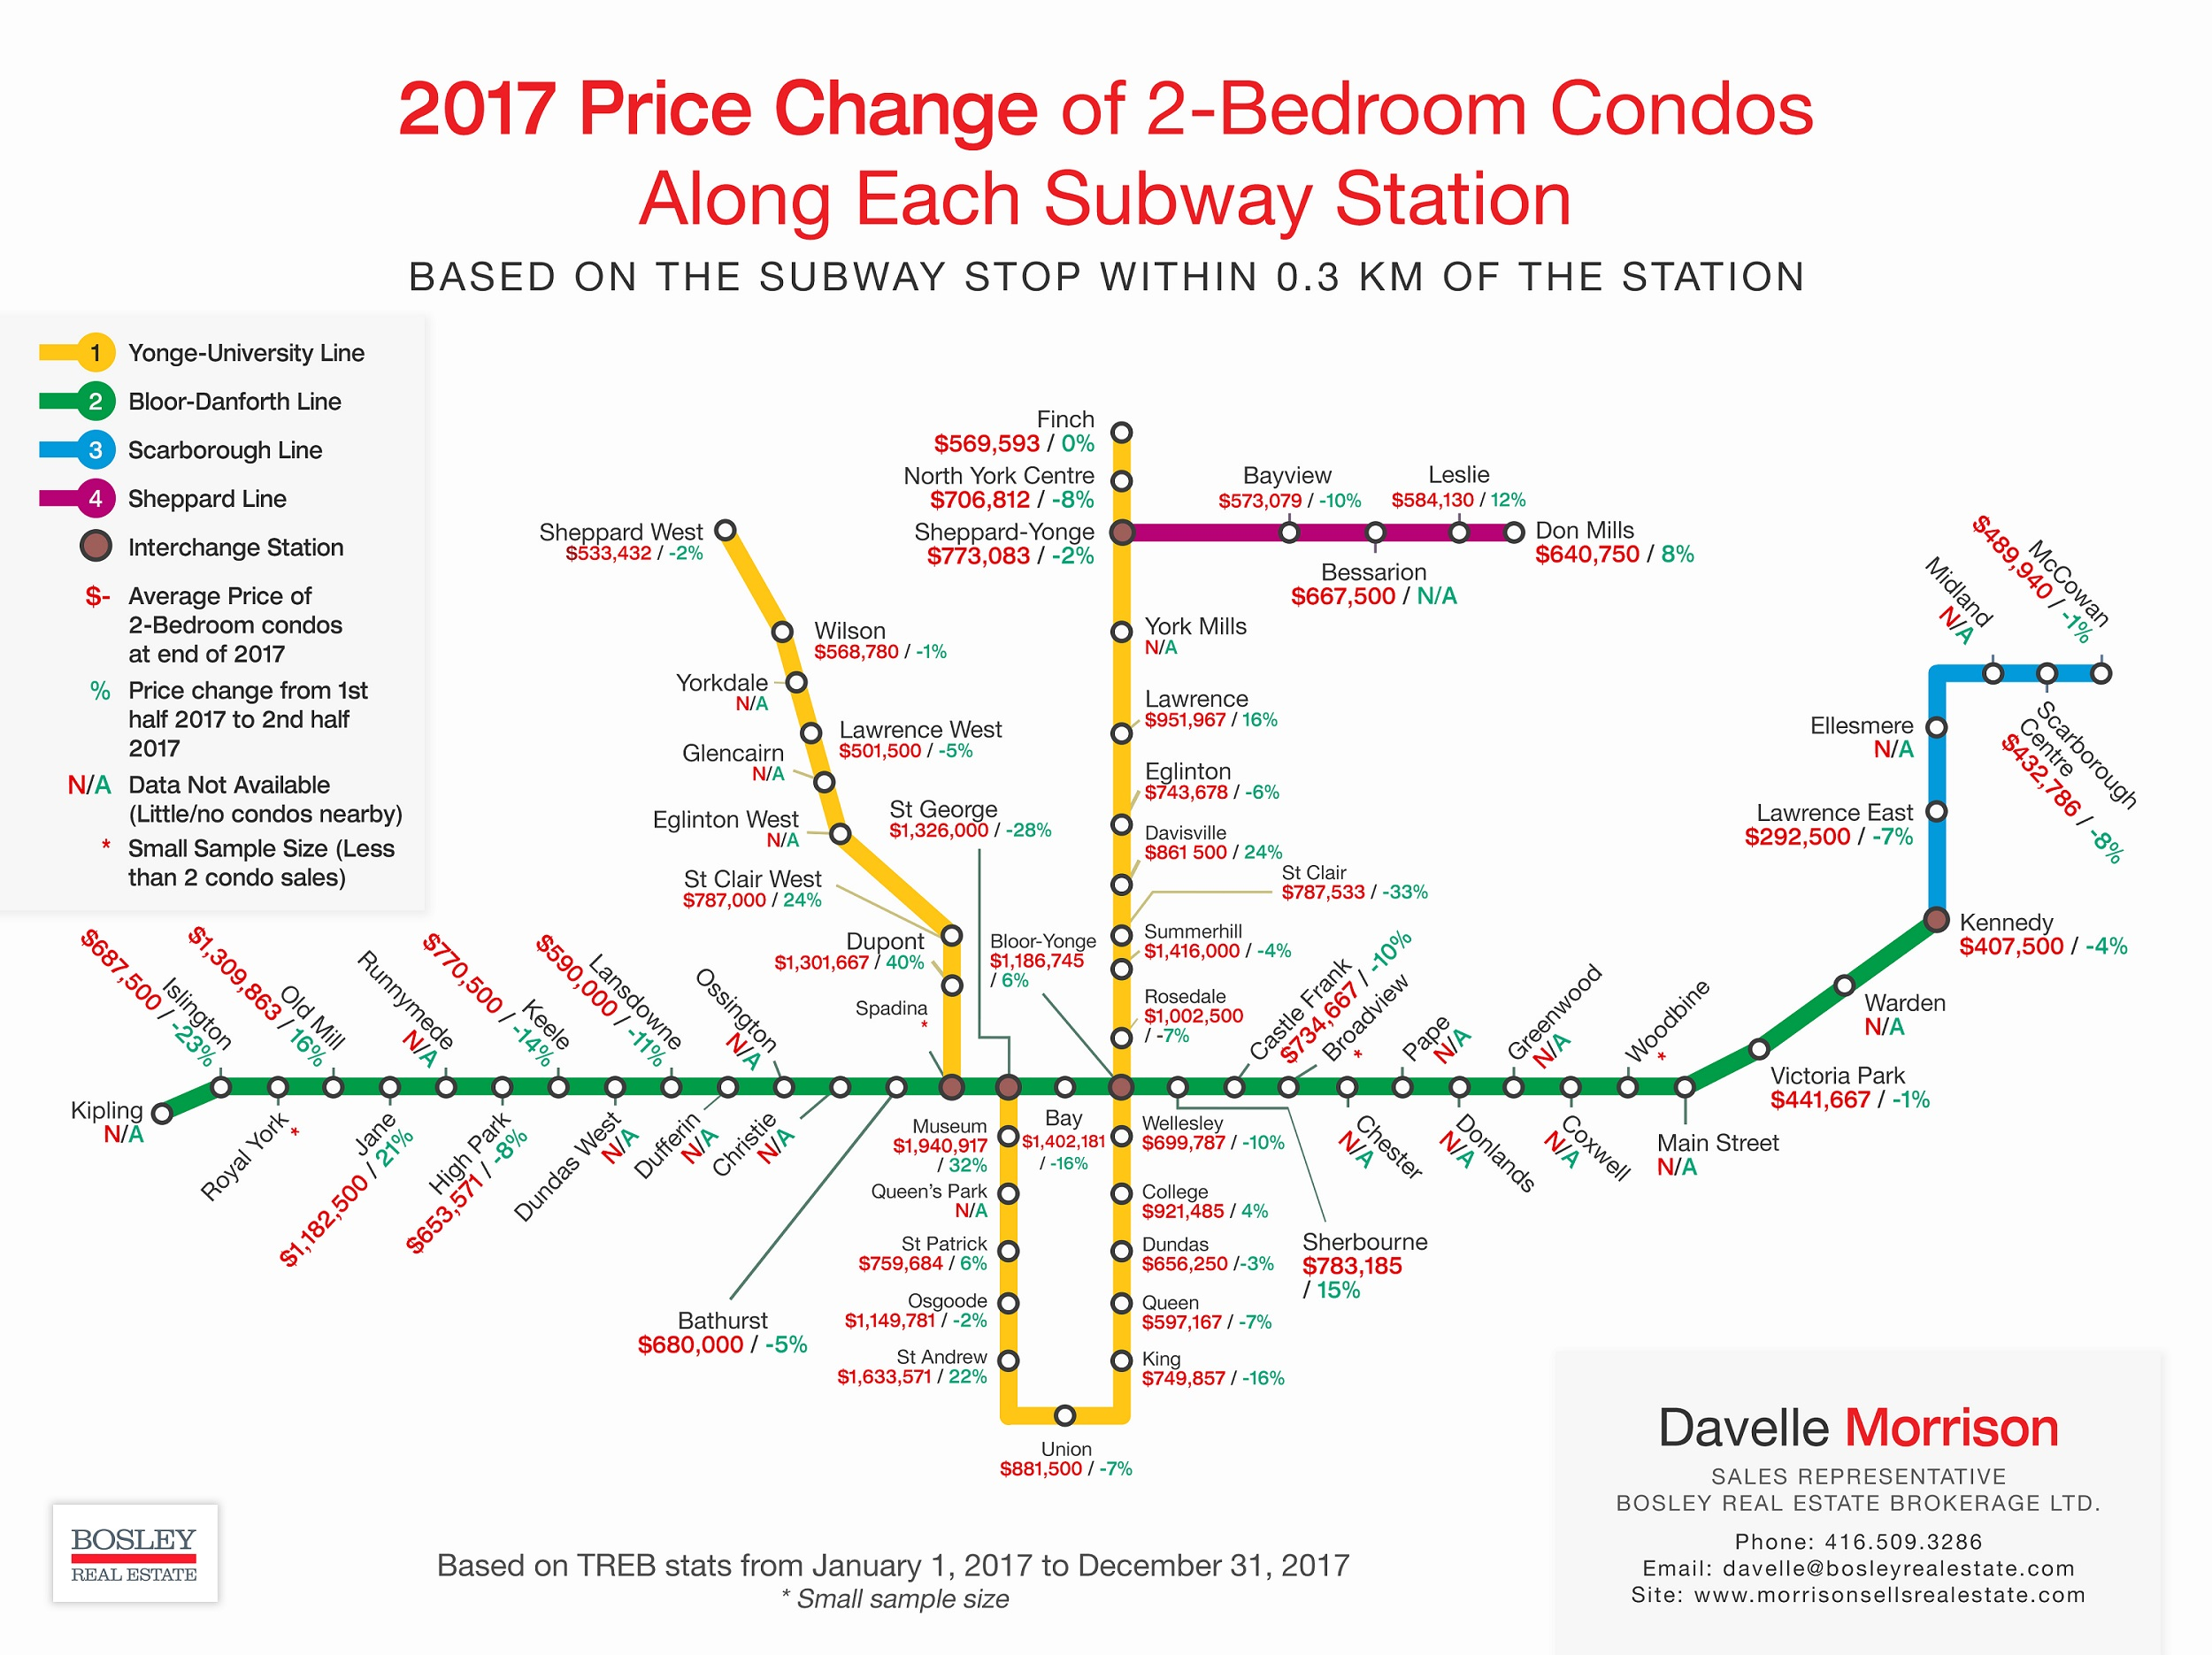 2017 Price Change For 2 Bedroom Condos Near TTC Stations